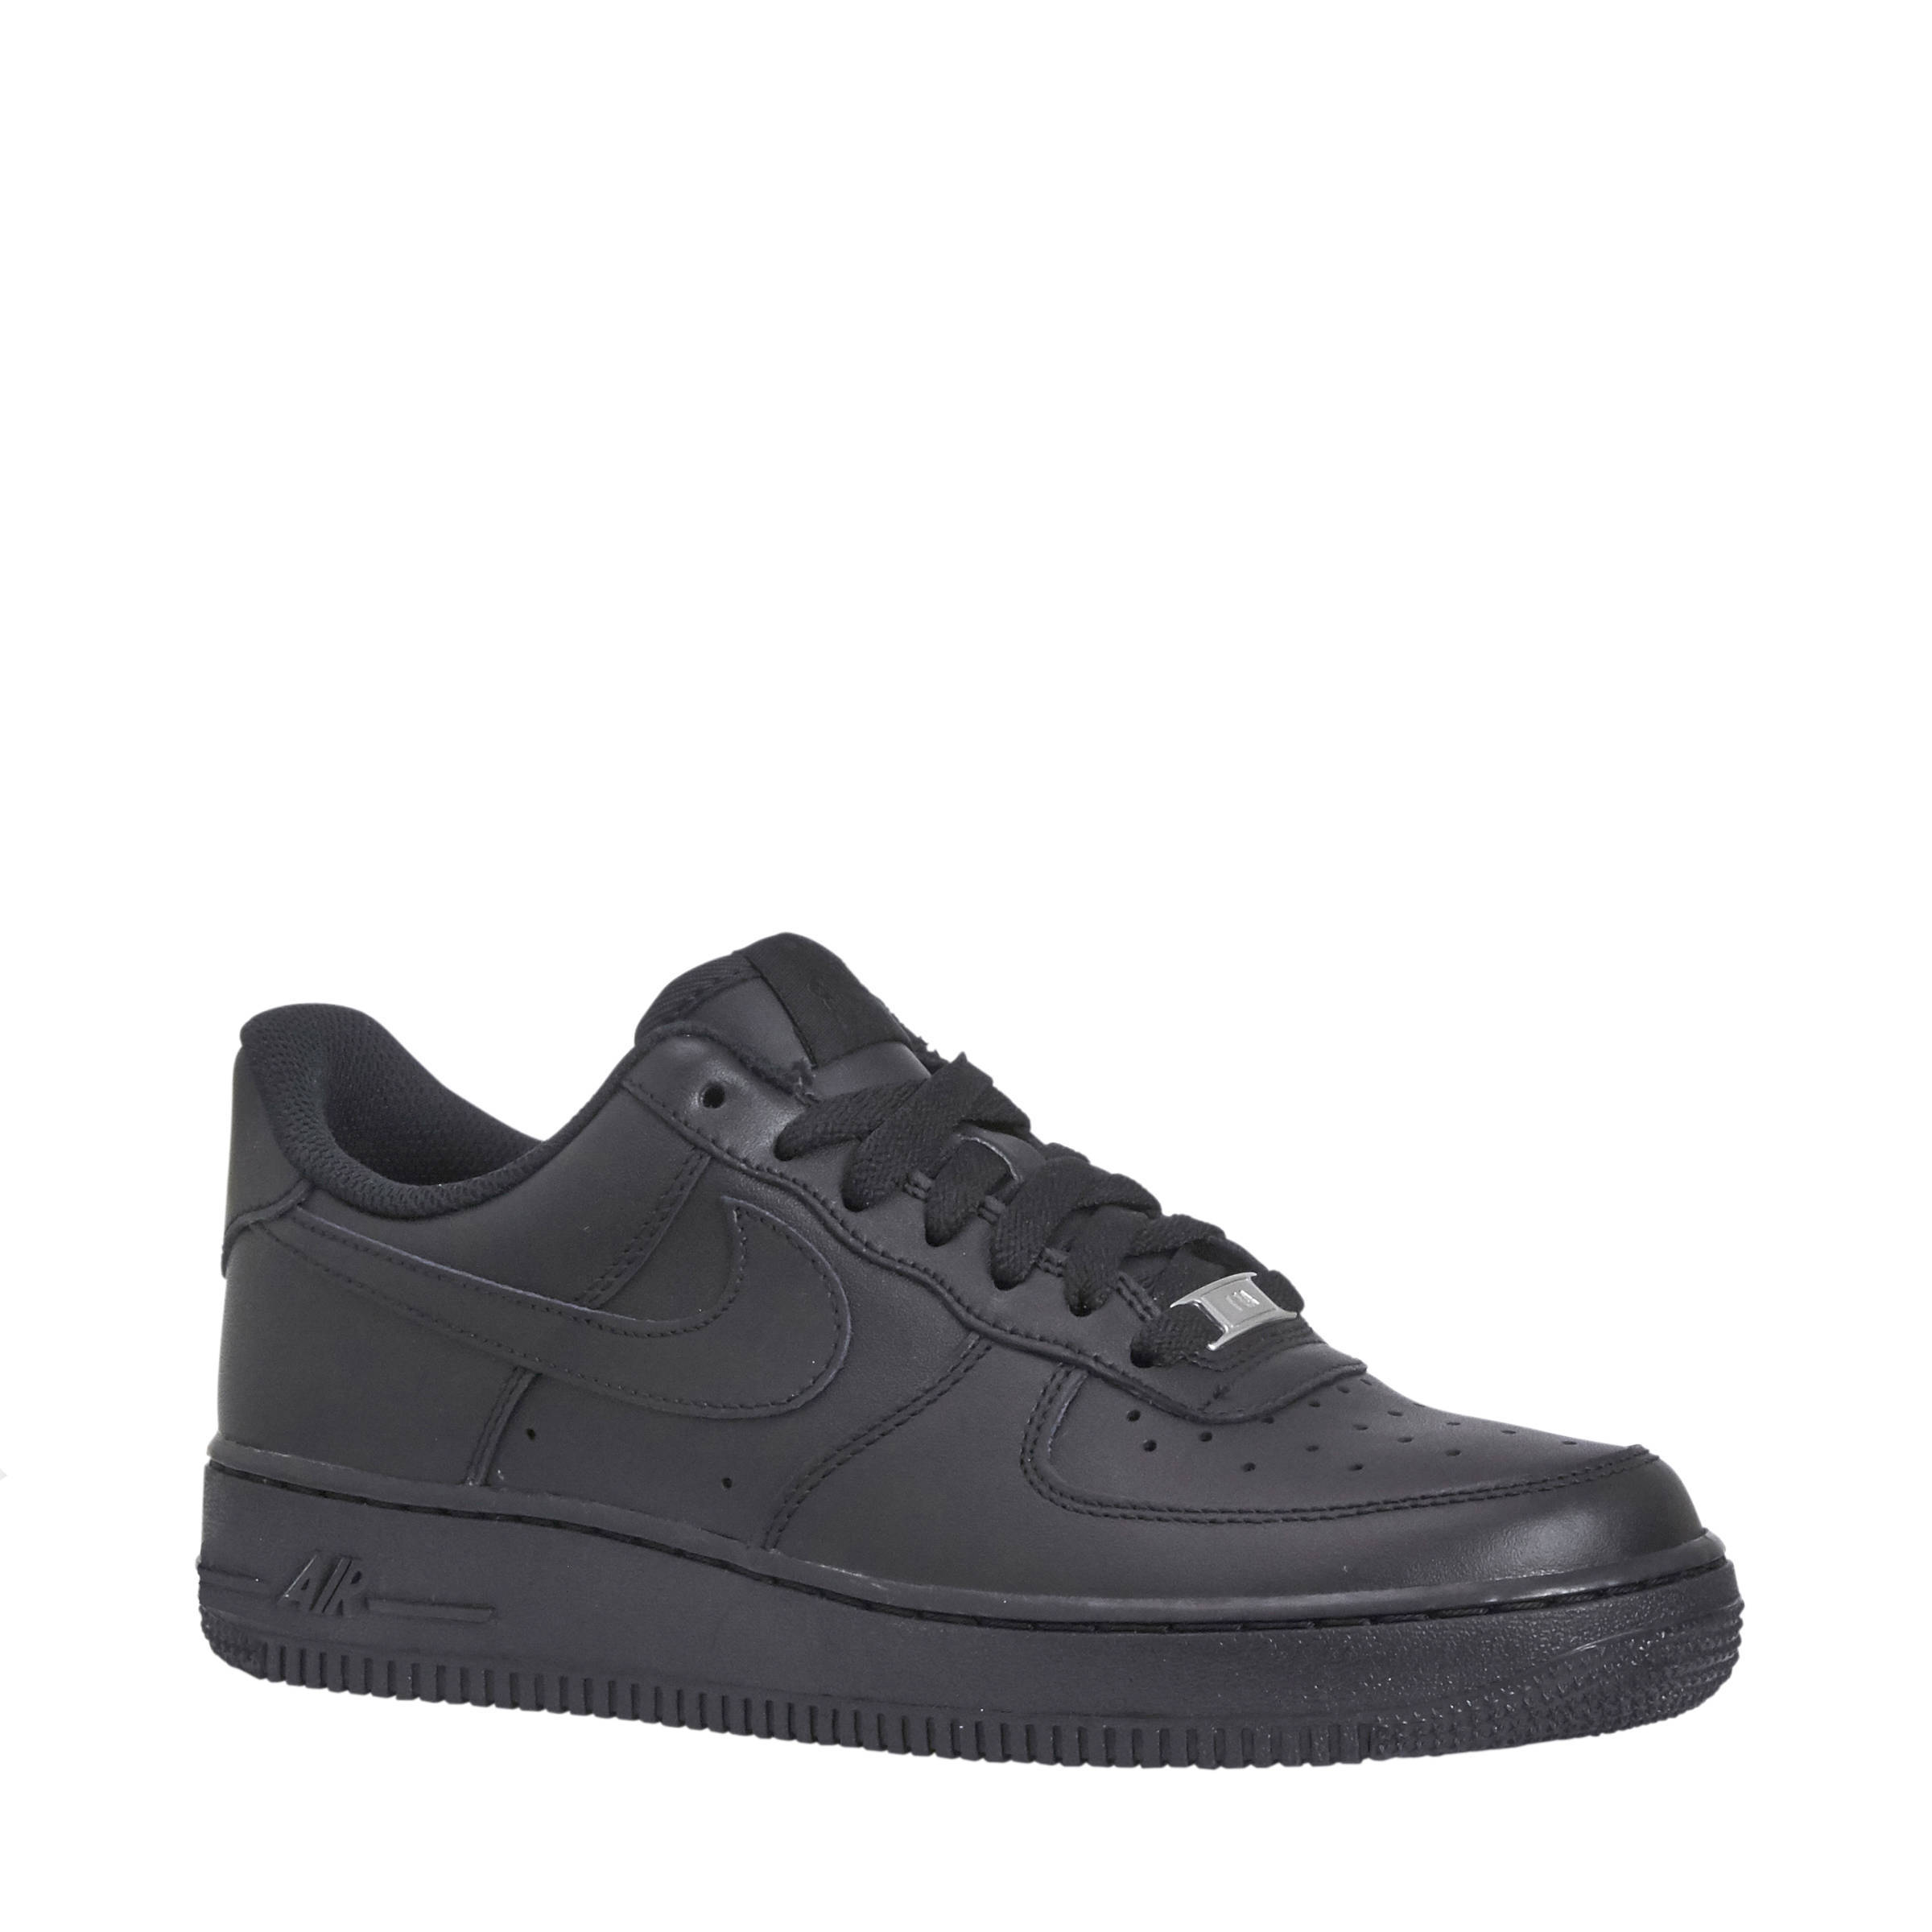 Nike Air Force 1 '07 sneakers (unisex)